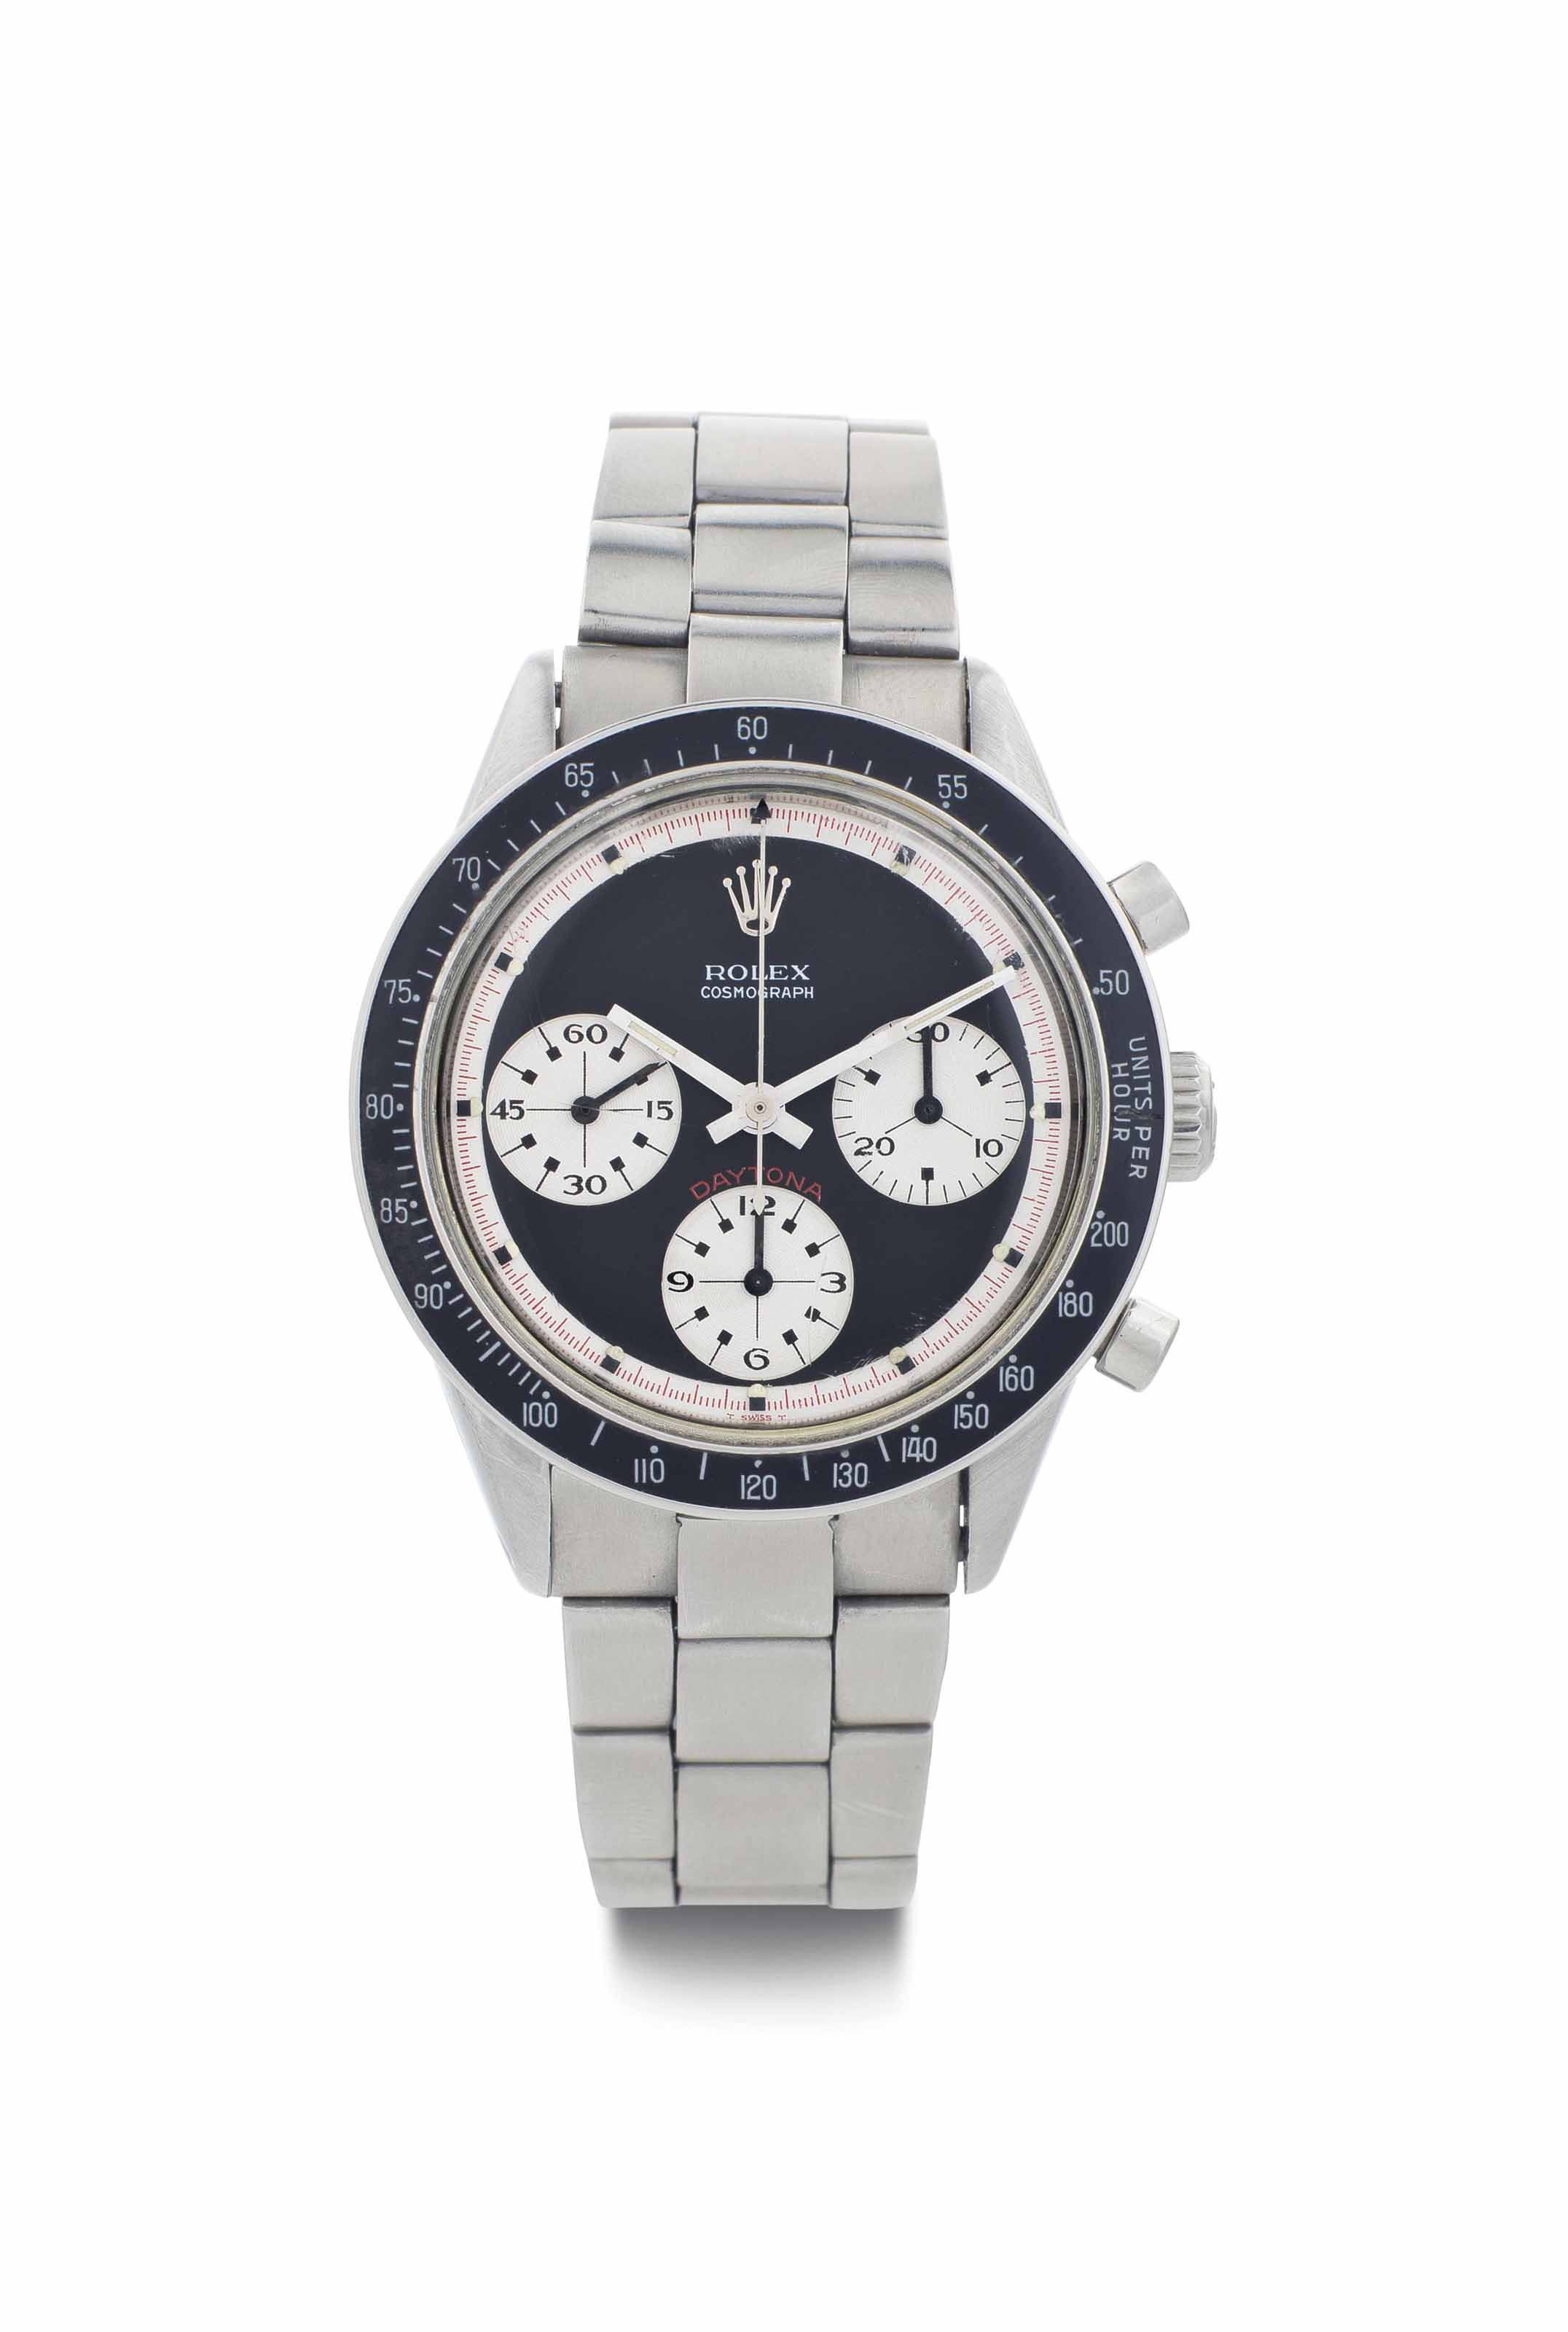 Rolex. A Fine Stainless Steel Chronograph Wristwatch with Bracelet